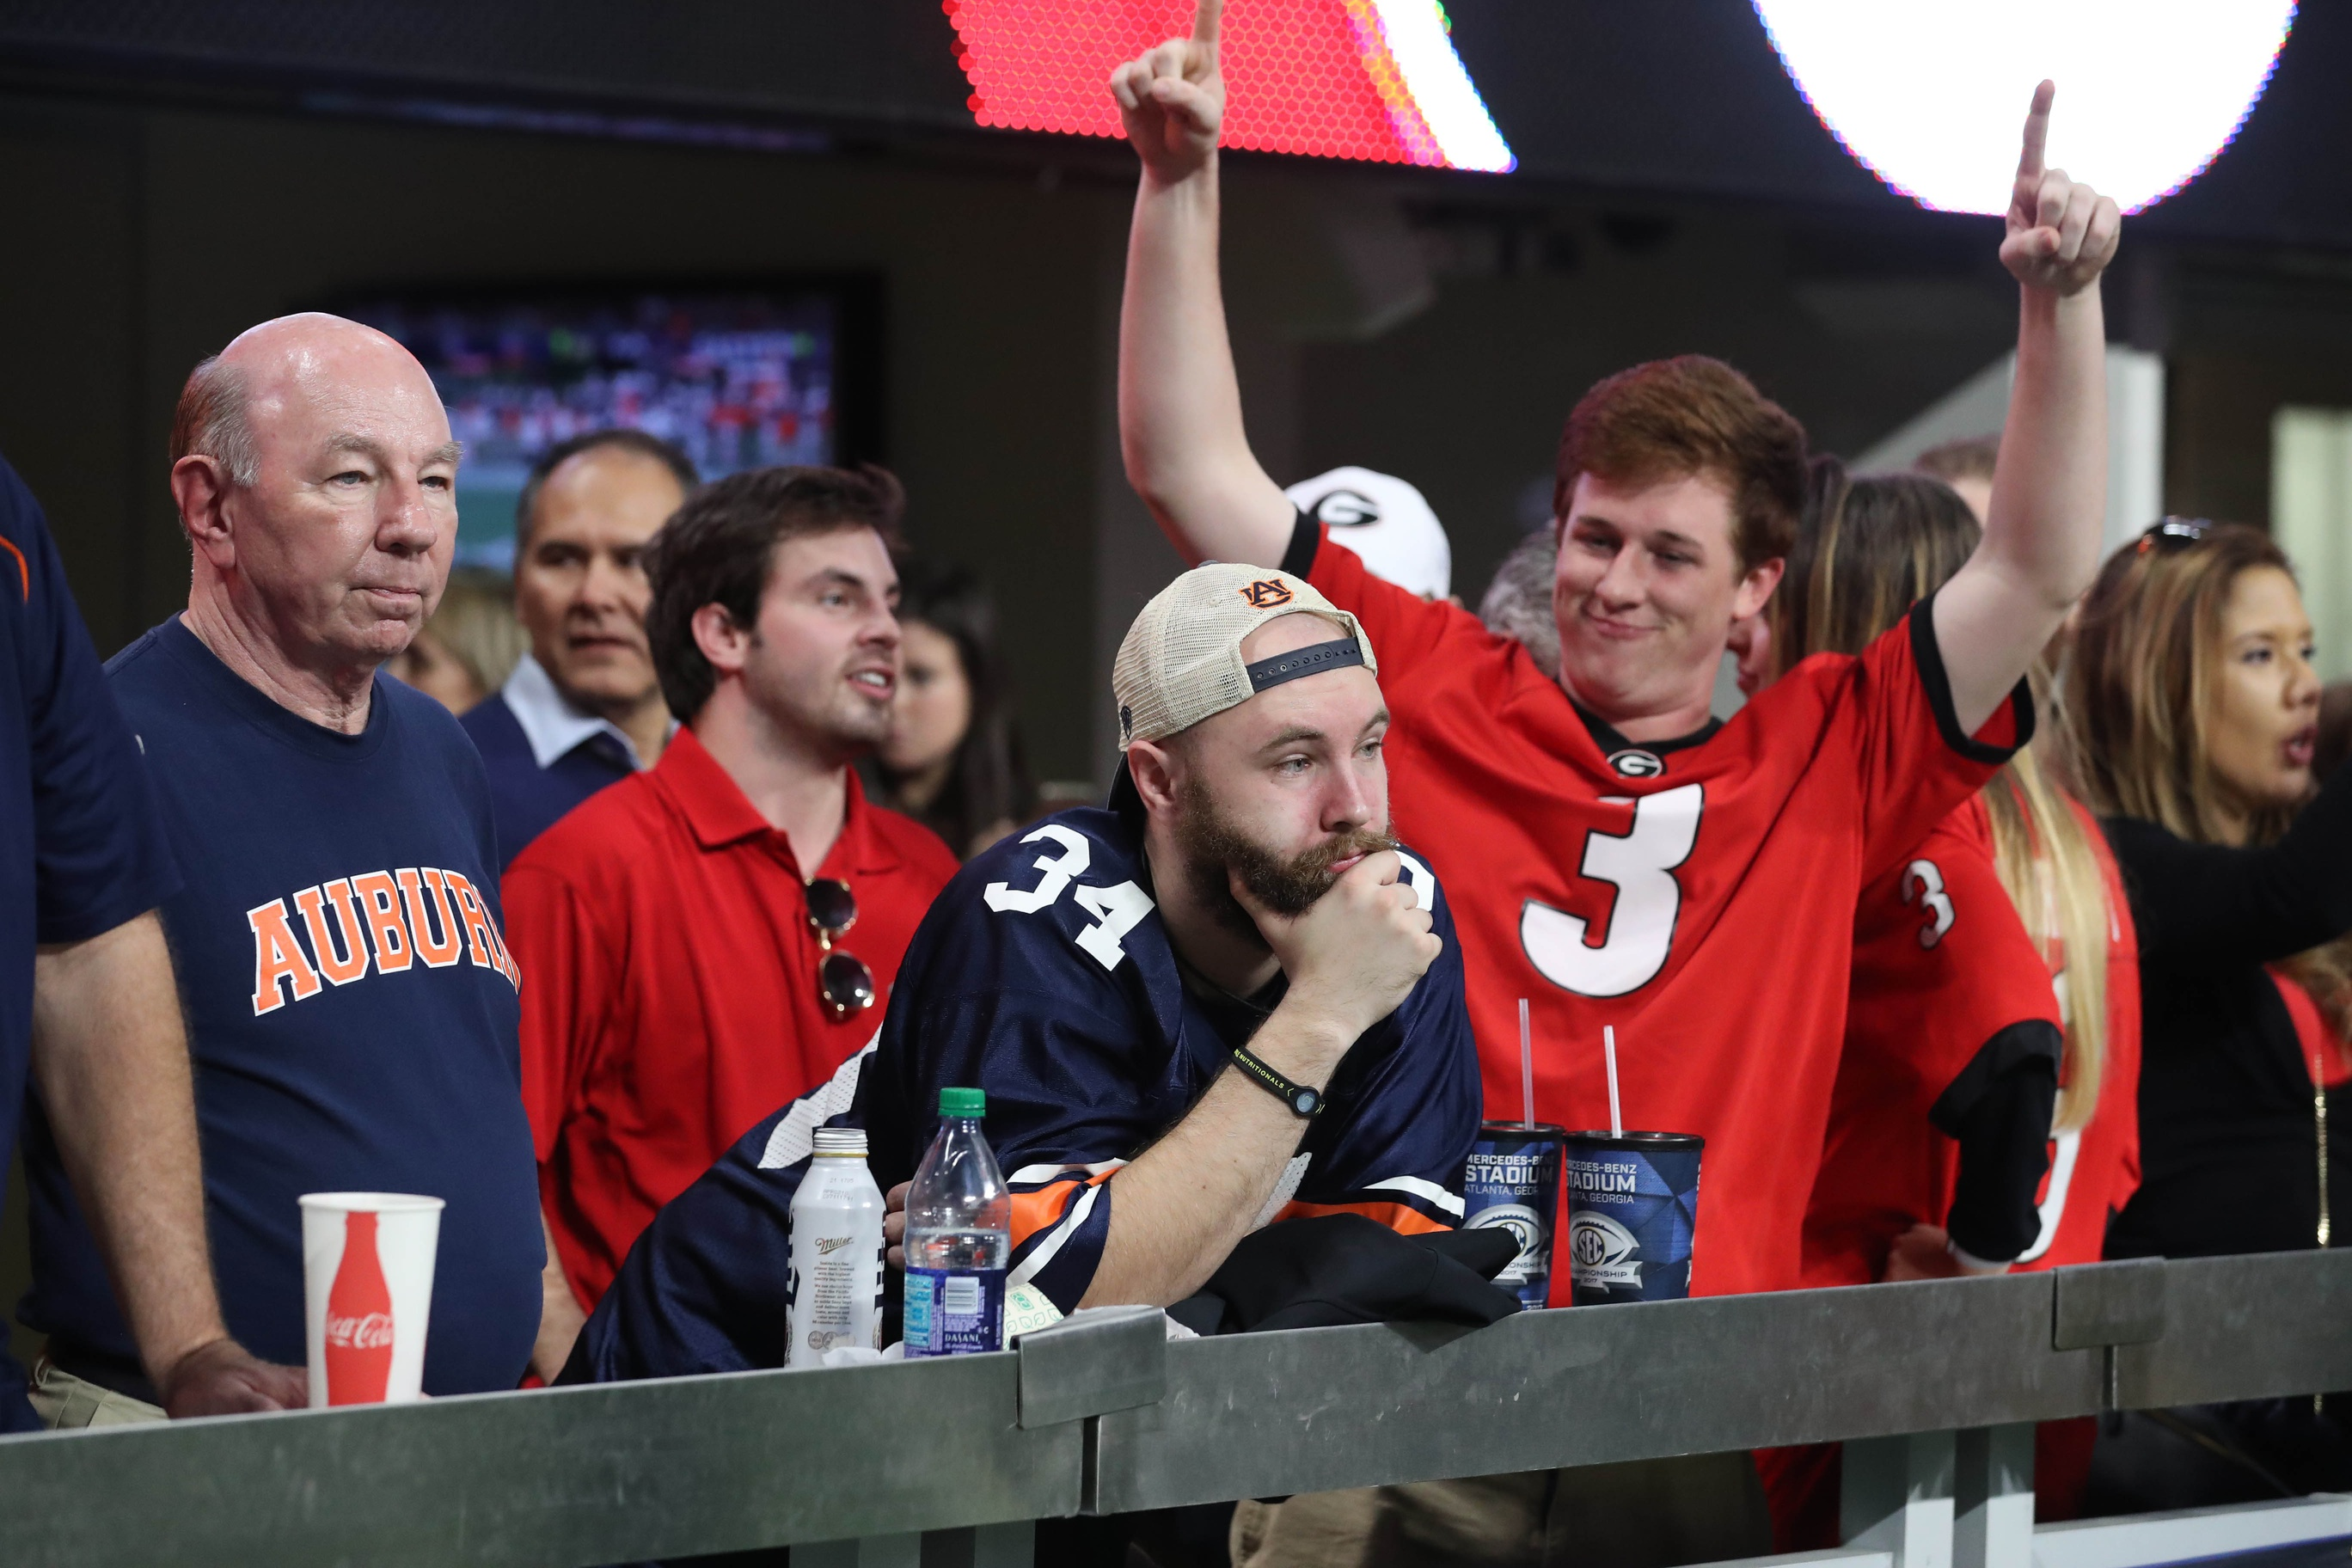 ItMightMeanTooMuch: Let's discuss the Auburn reaction to George